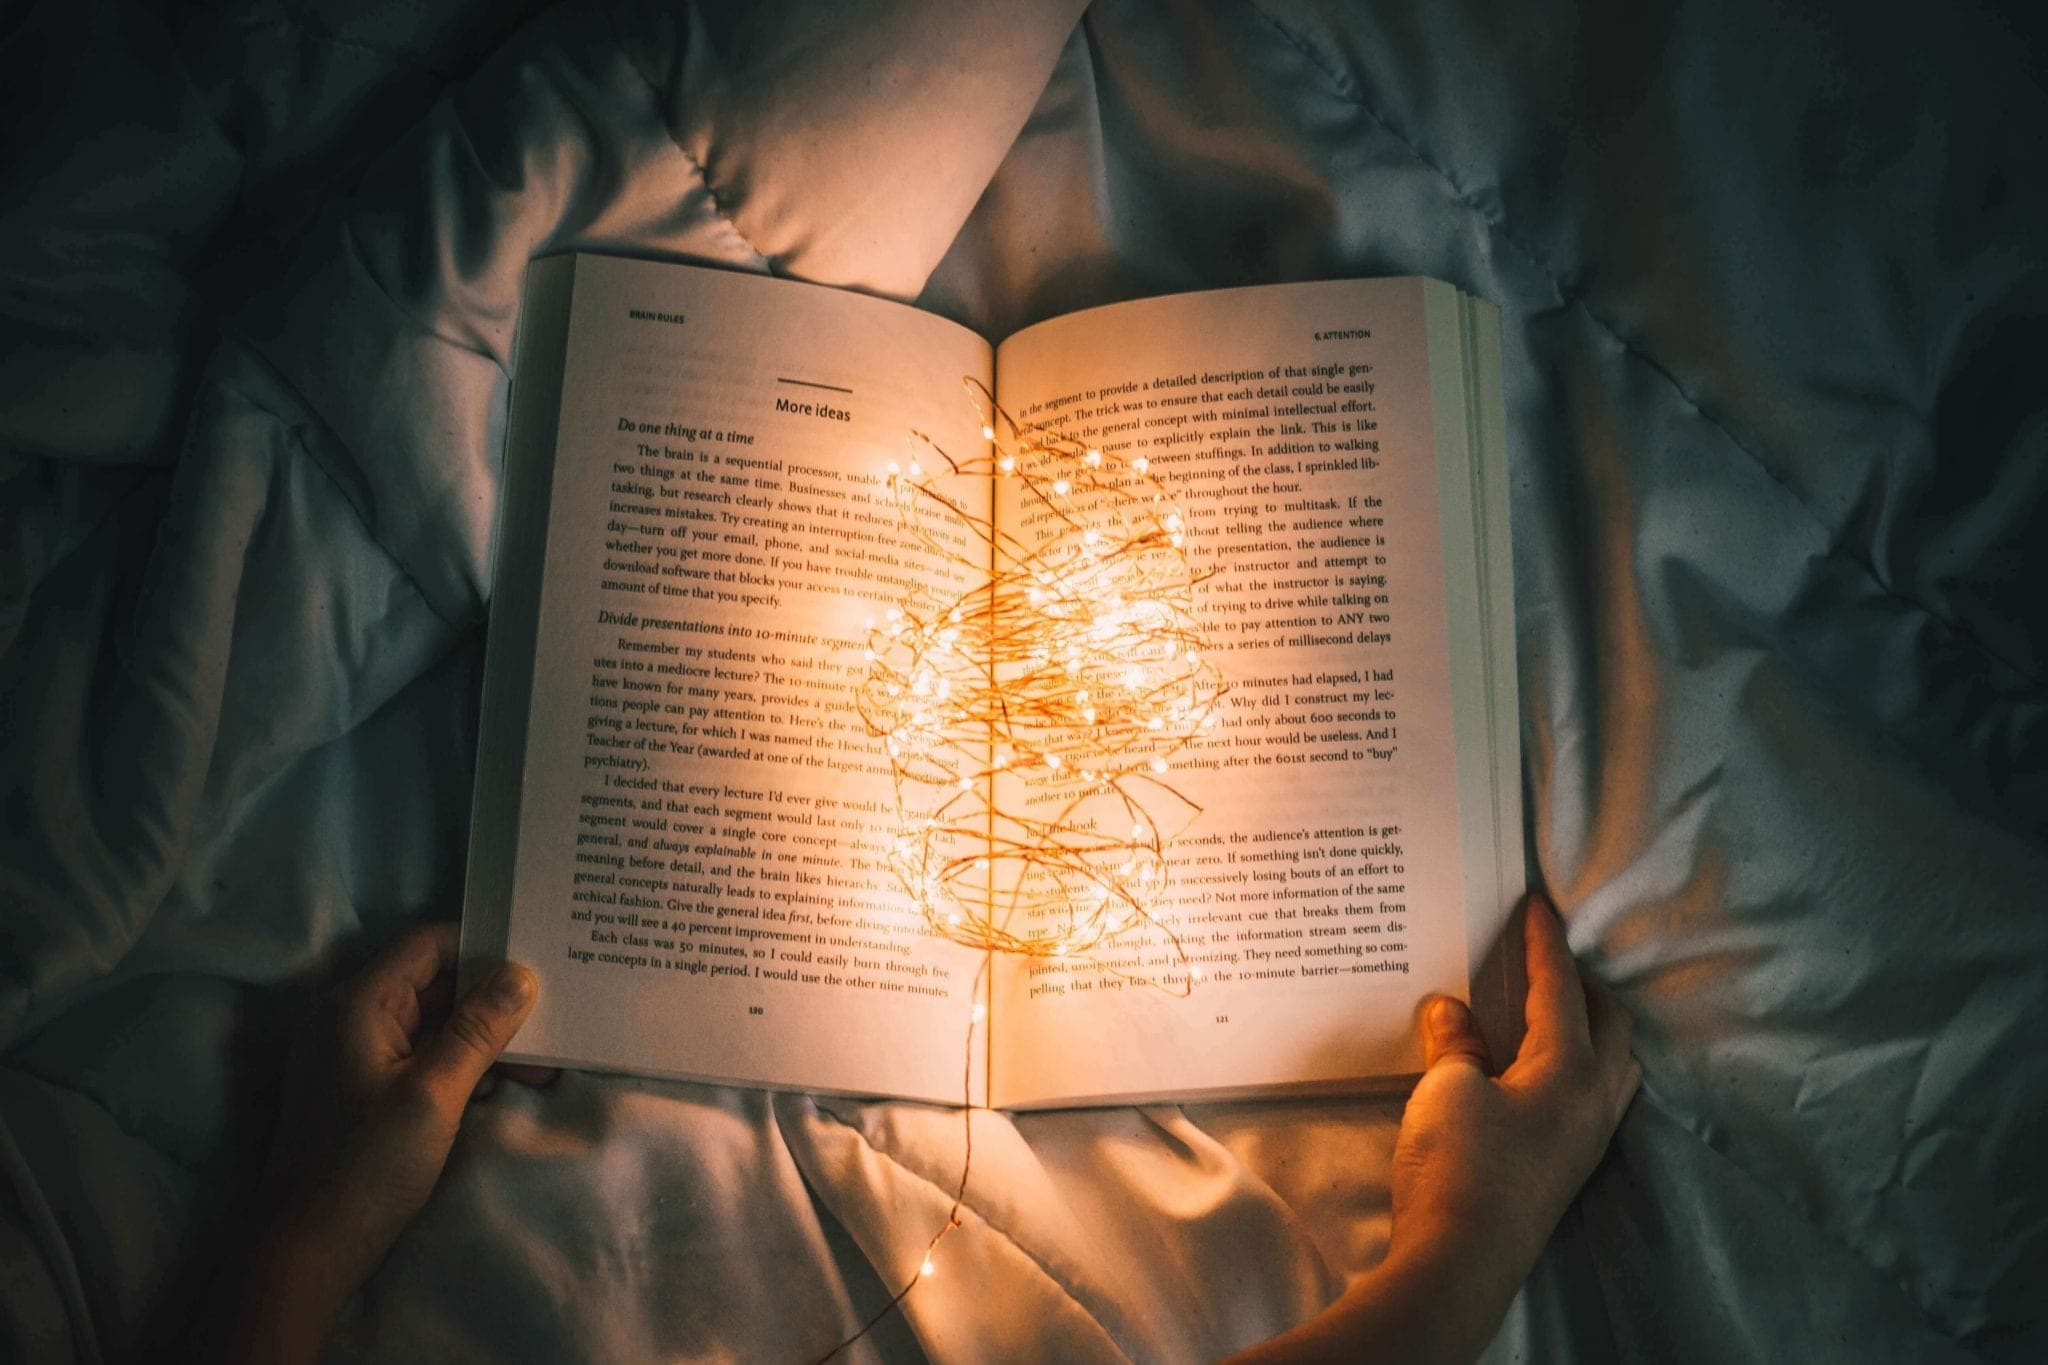 an open book willed with small lights